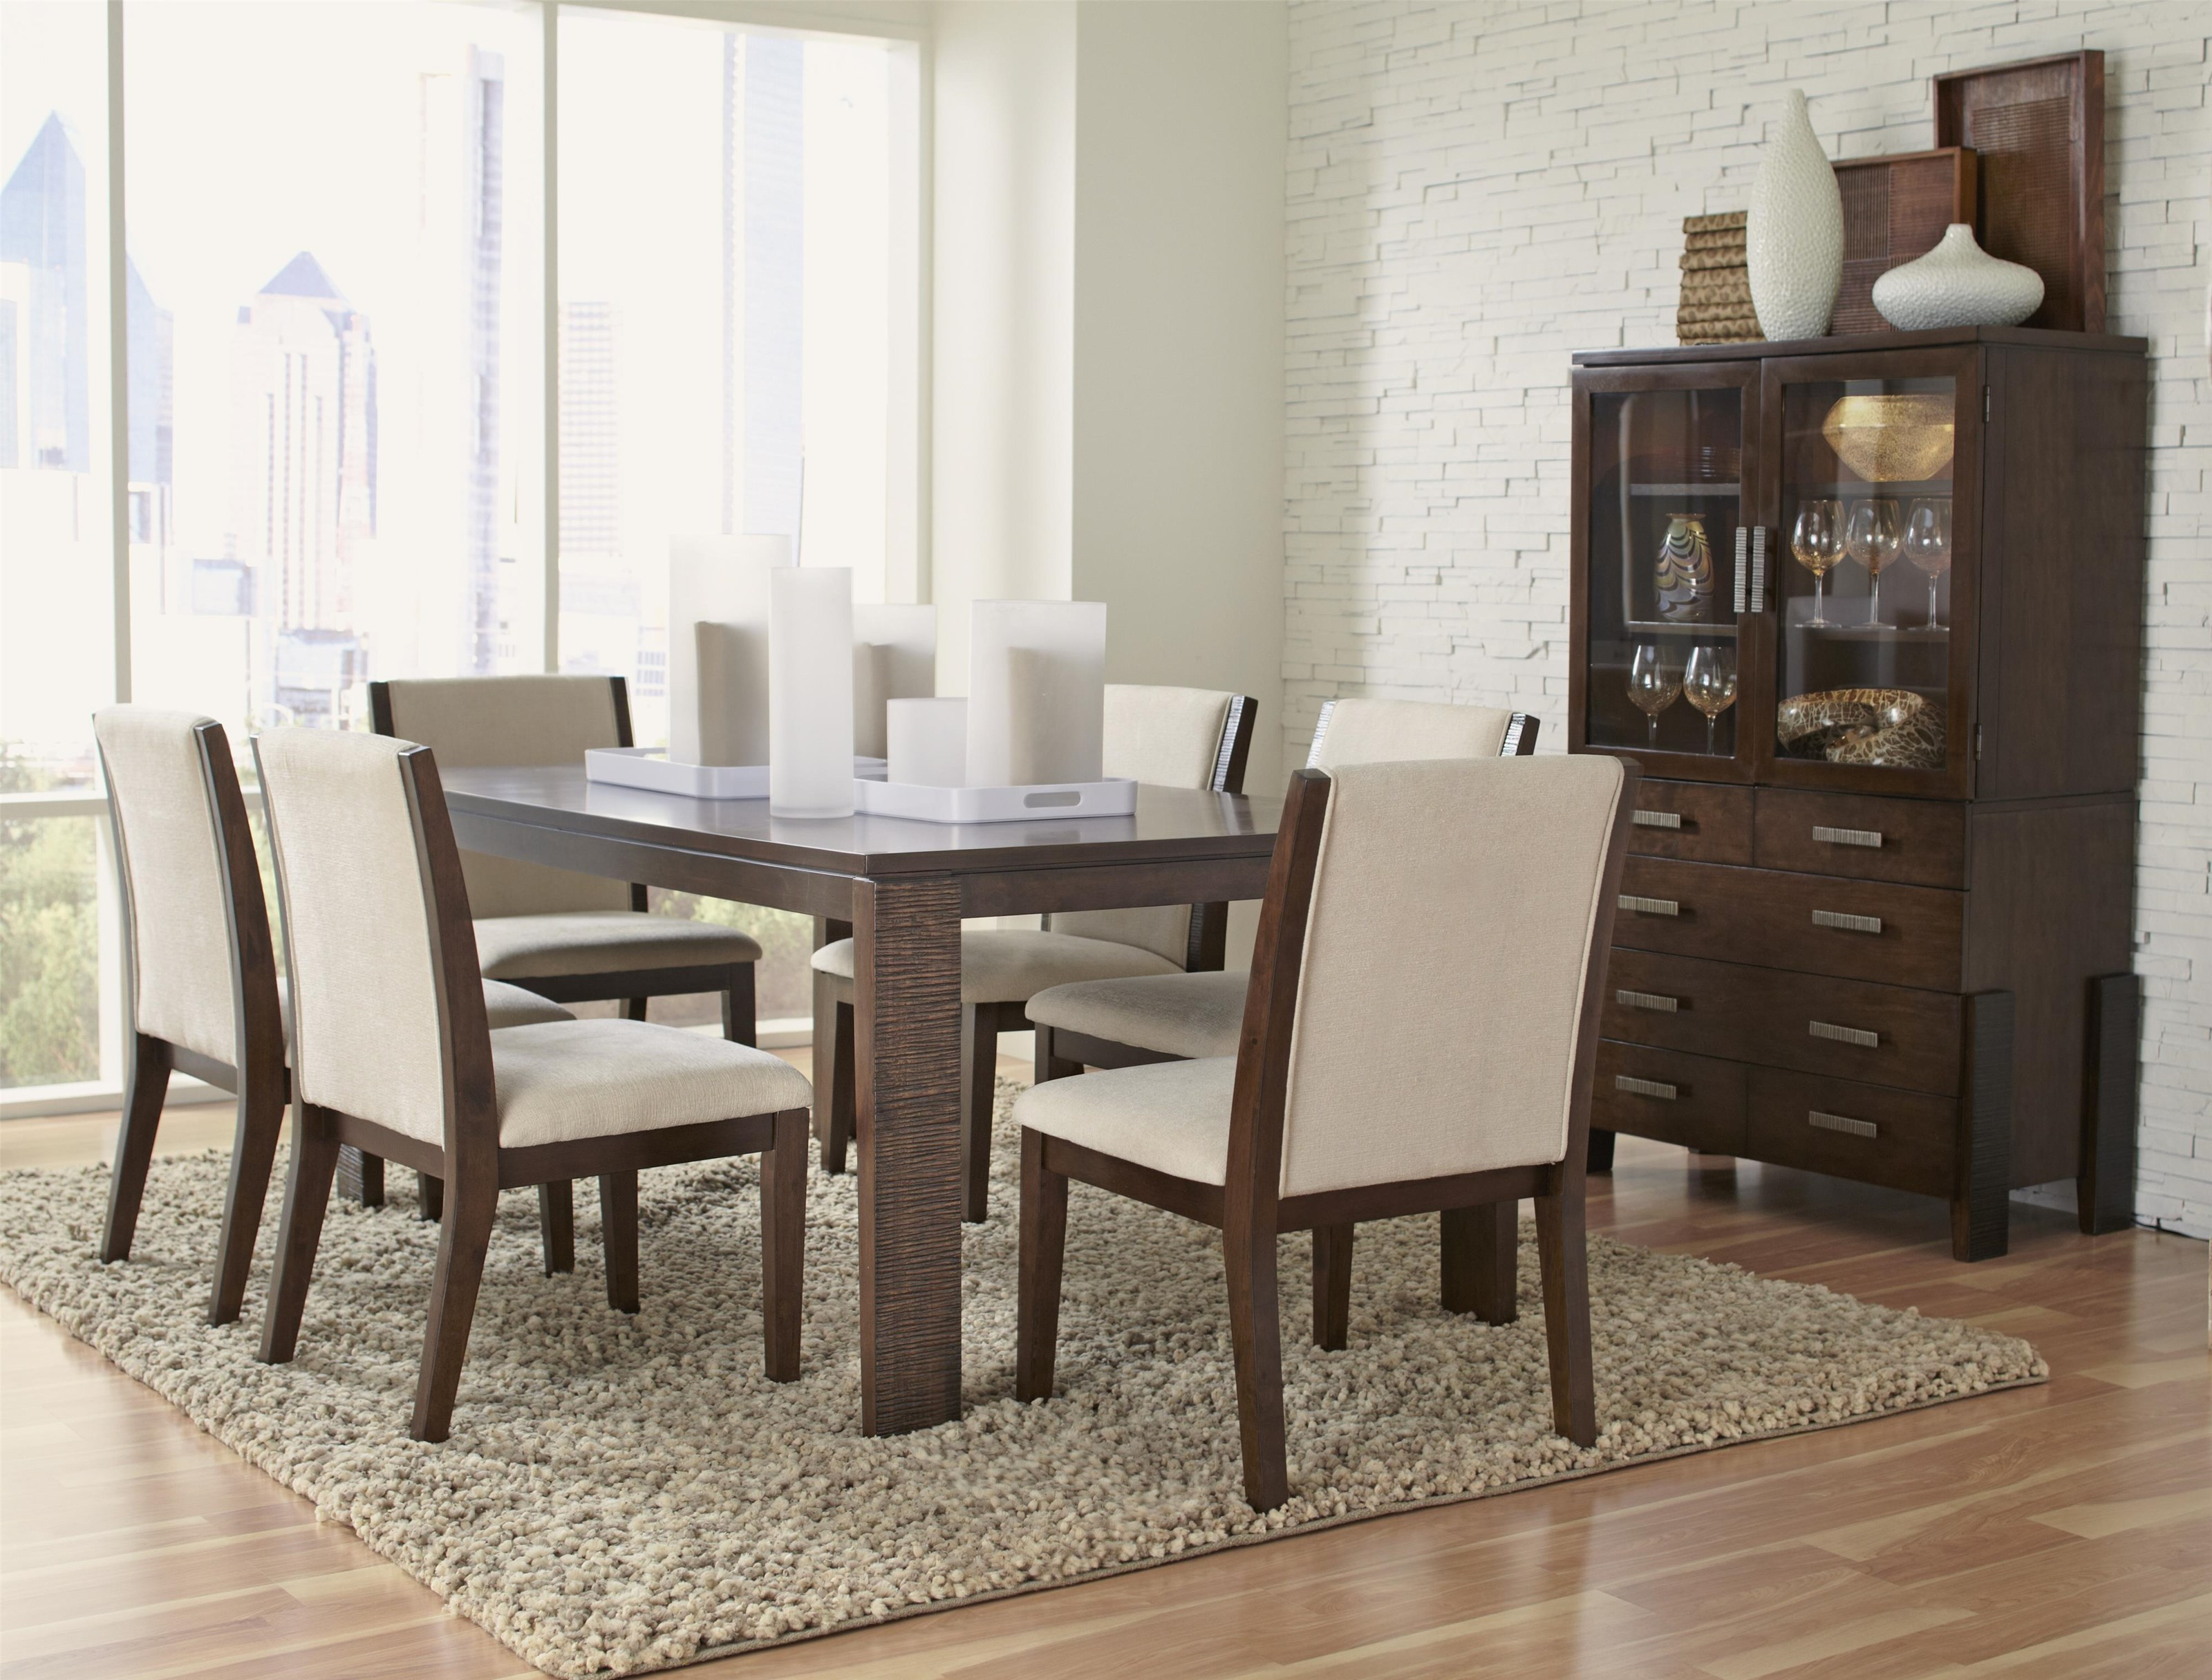 Montego 7 Pce Dining Set by Largo at Stoney Creek Furniture